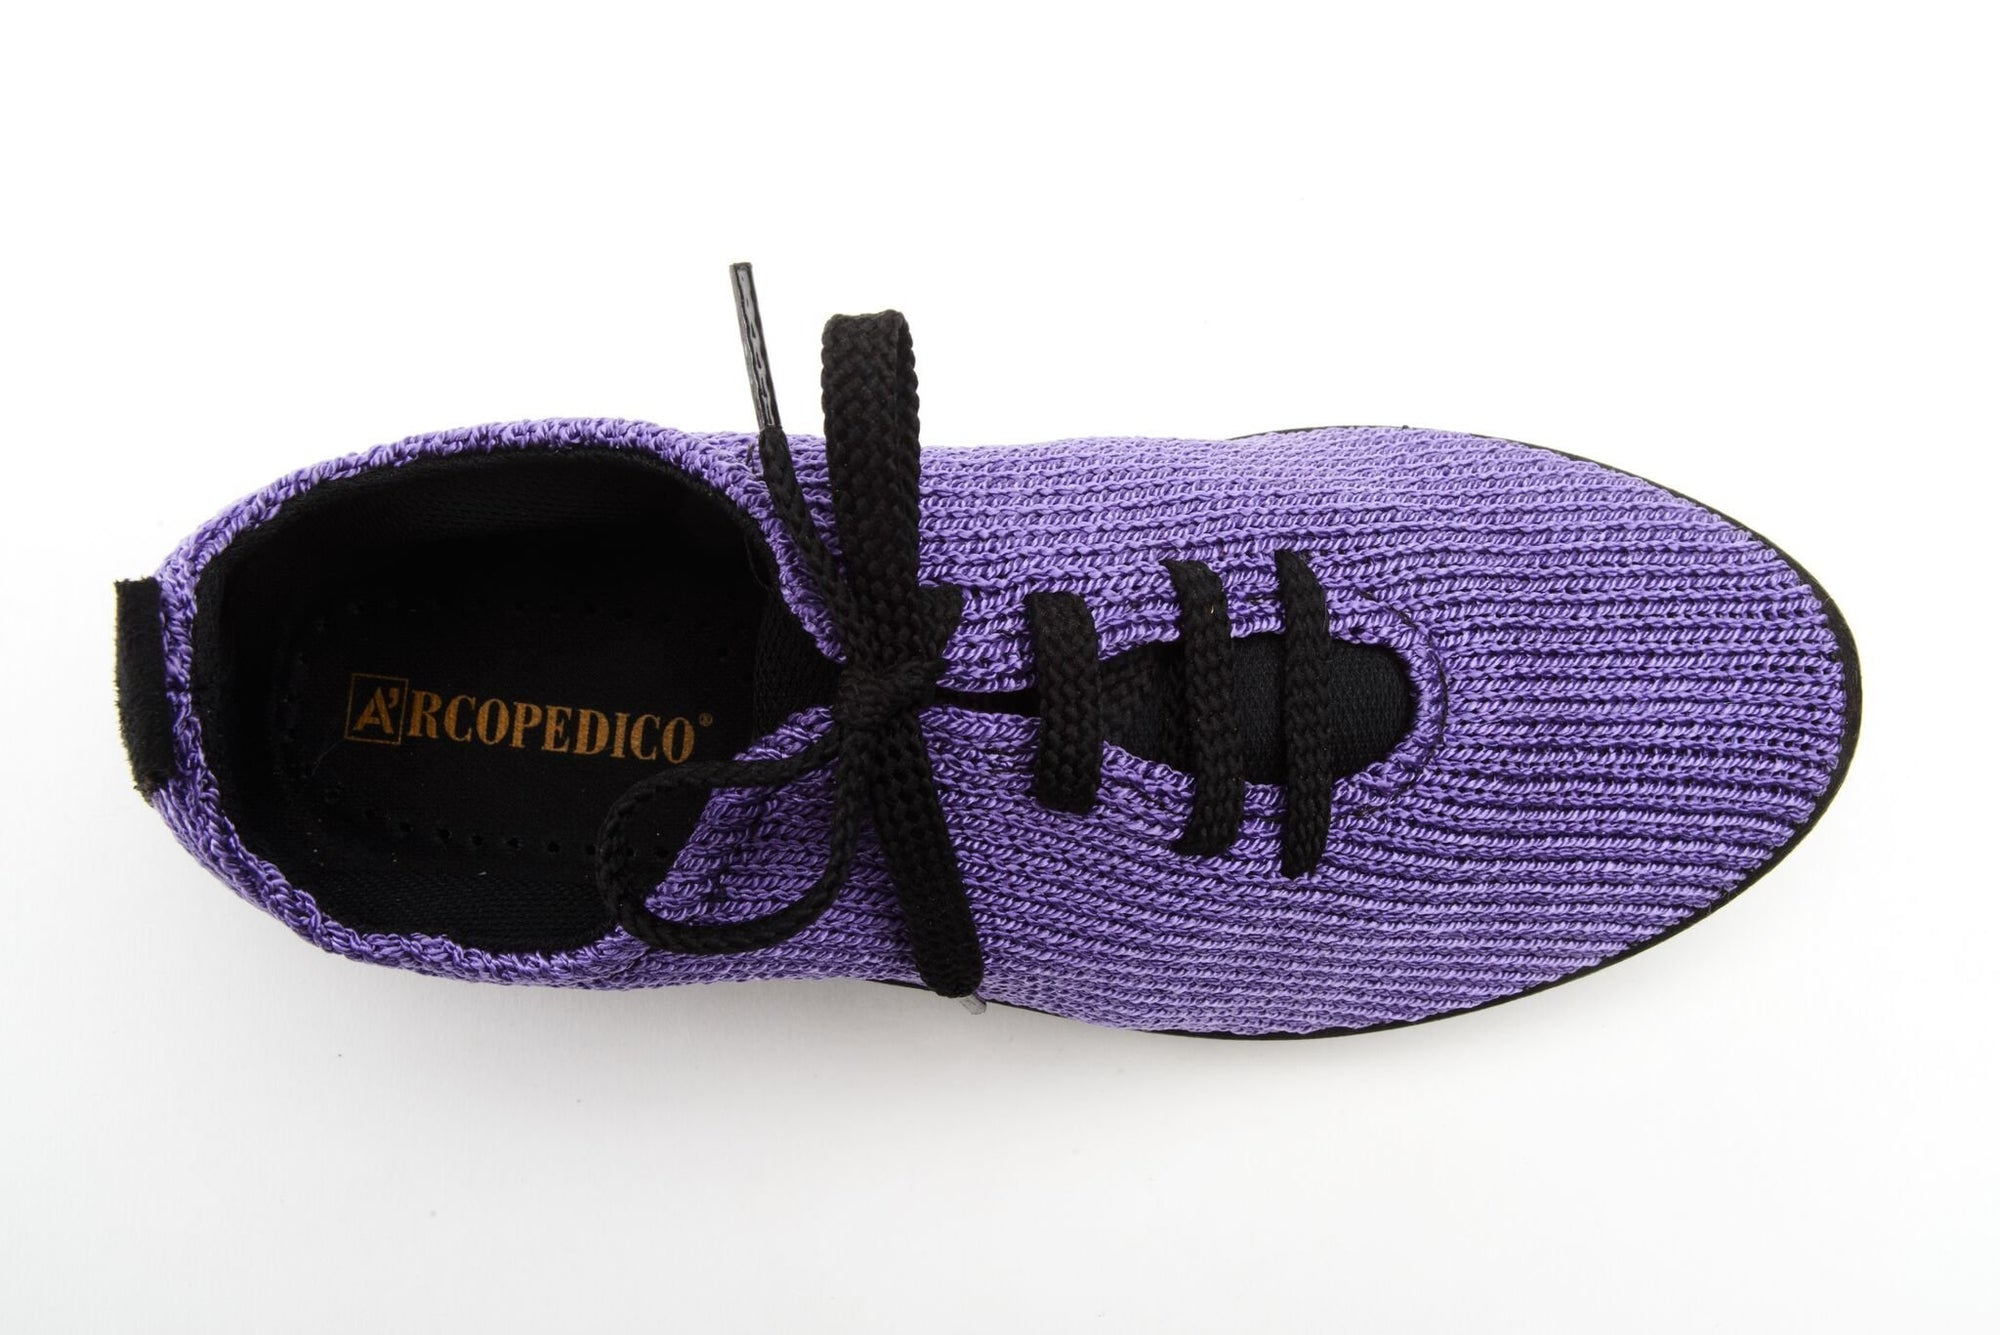 ARCOPEDICO VIOLET 1151LS-24 - Molly's! A Chic and Unique Boutique